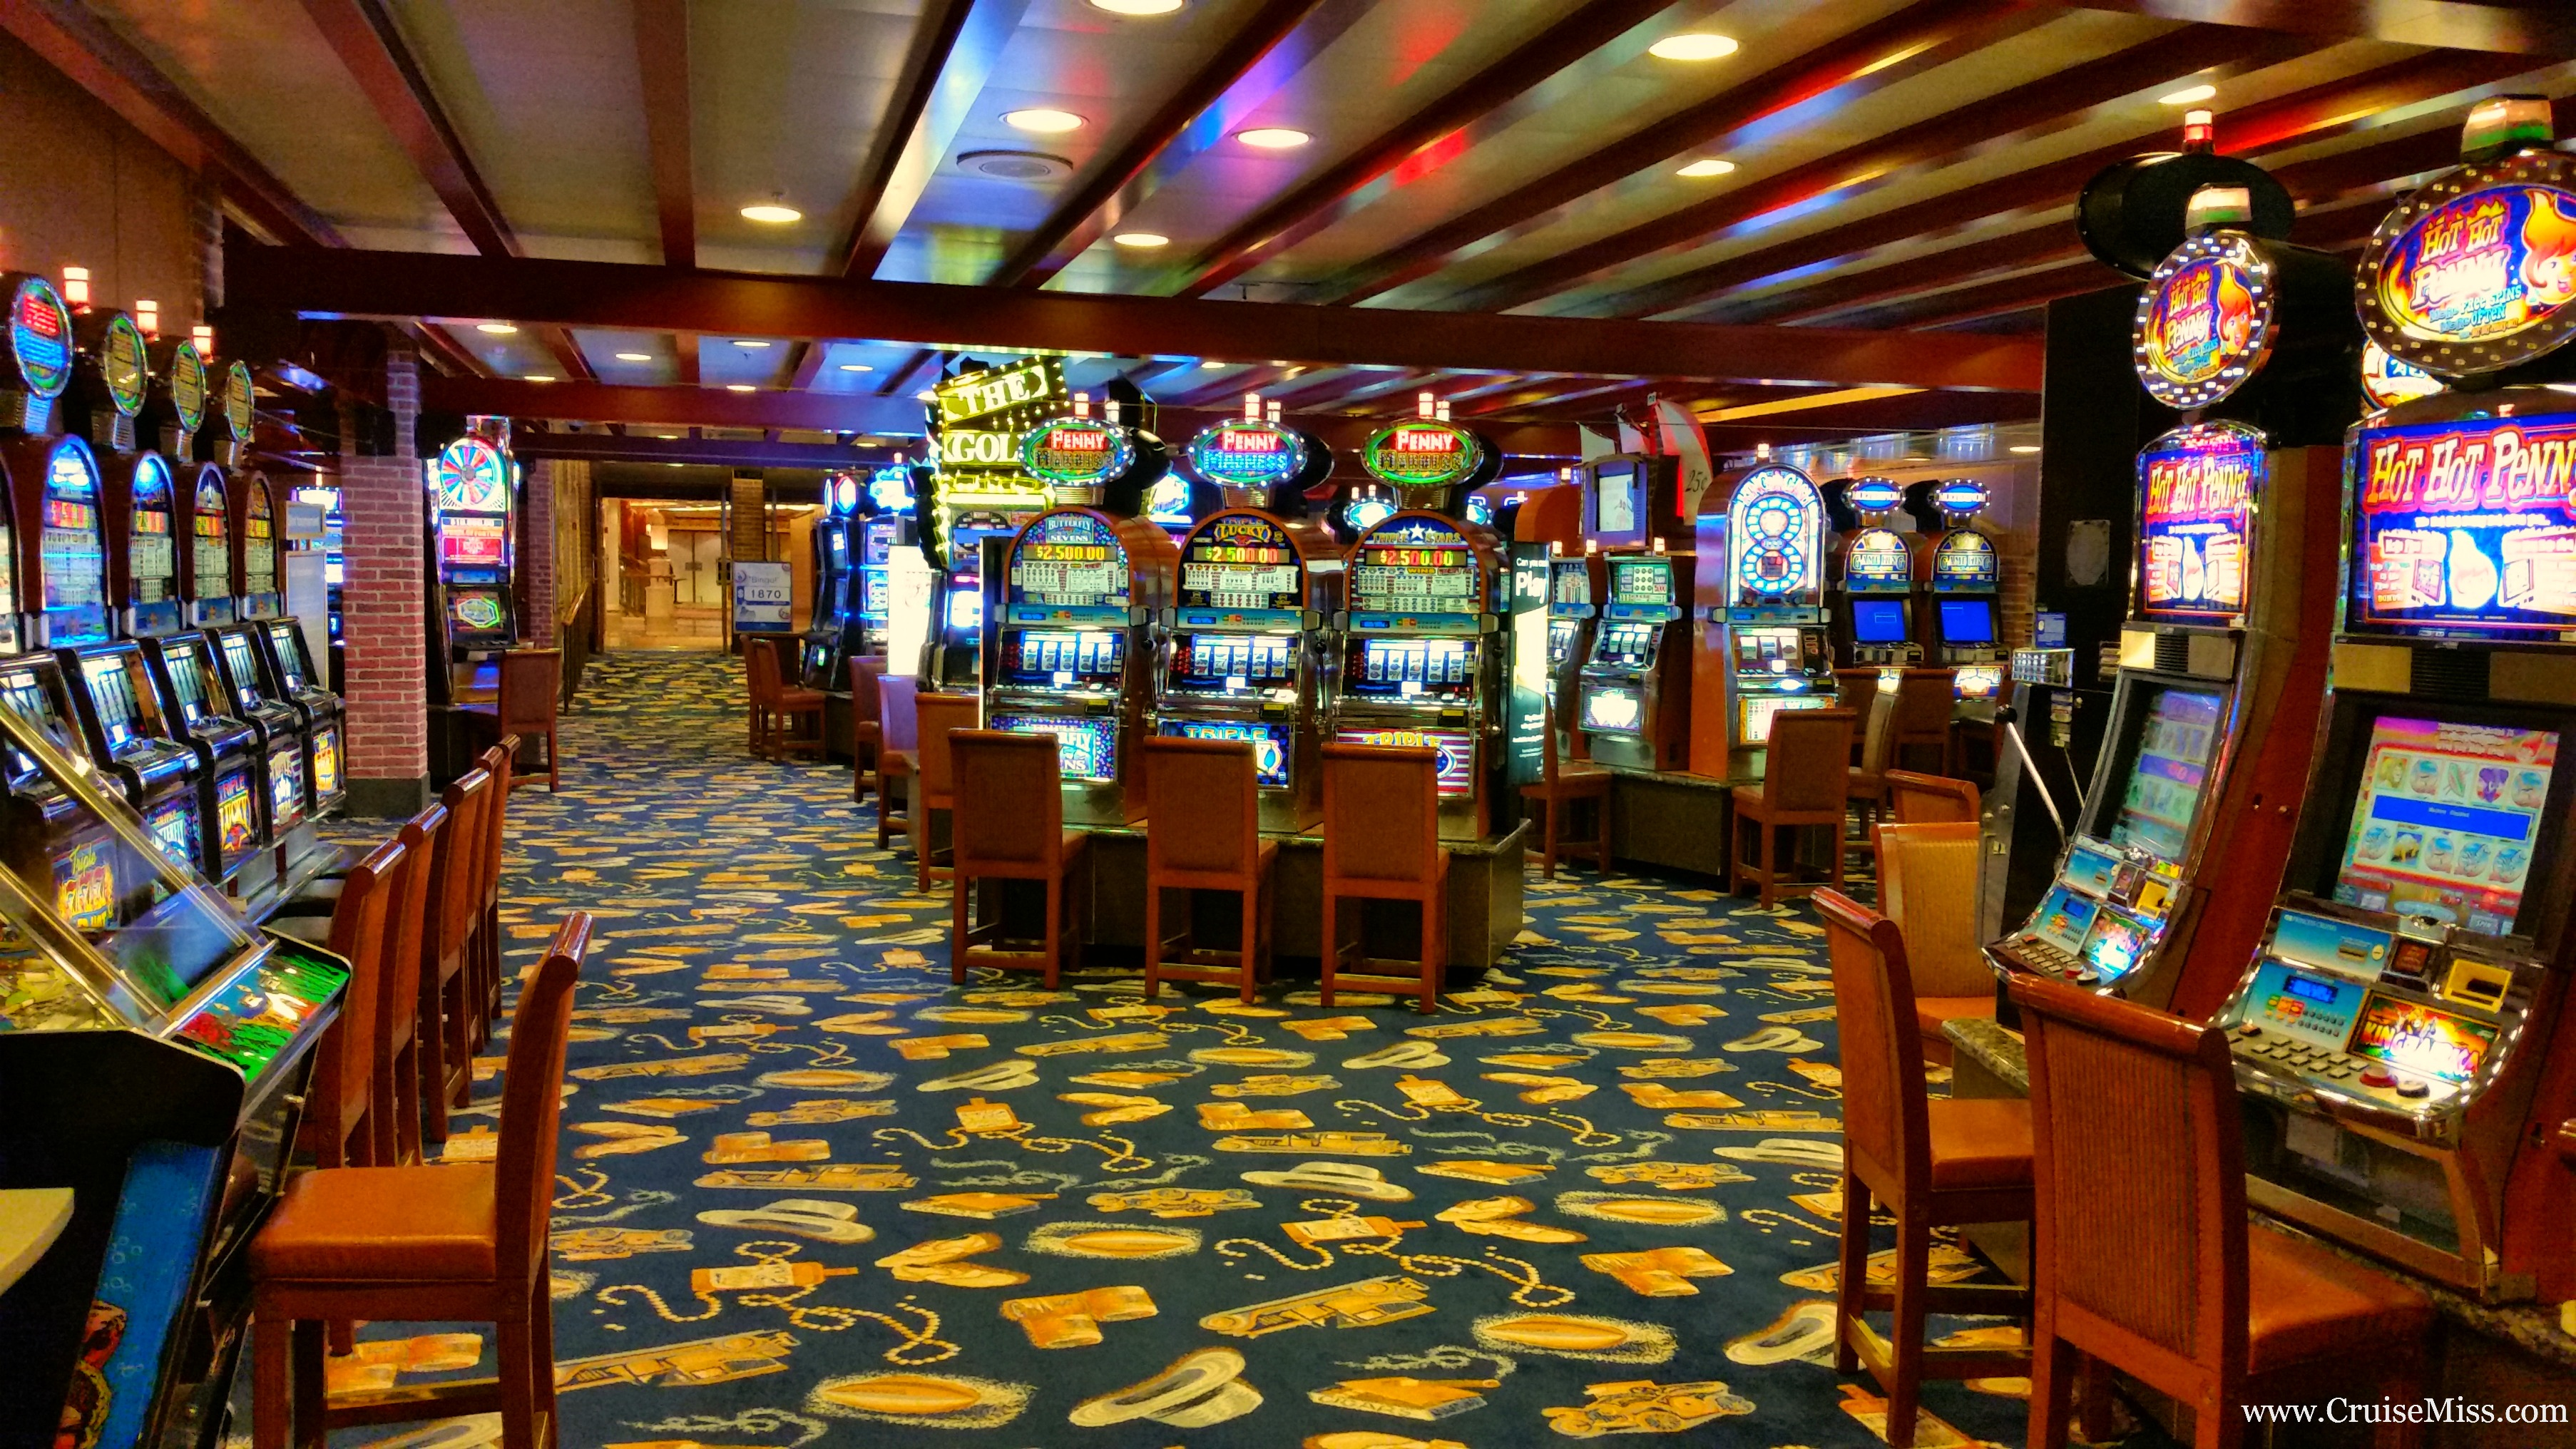 Emerald princess casino ship